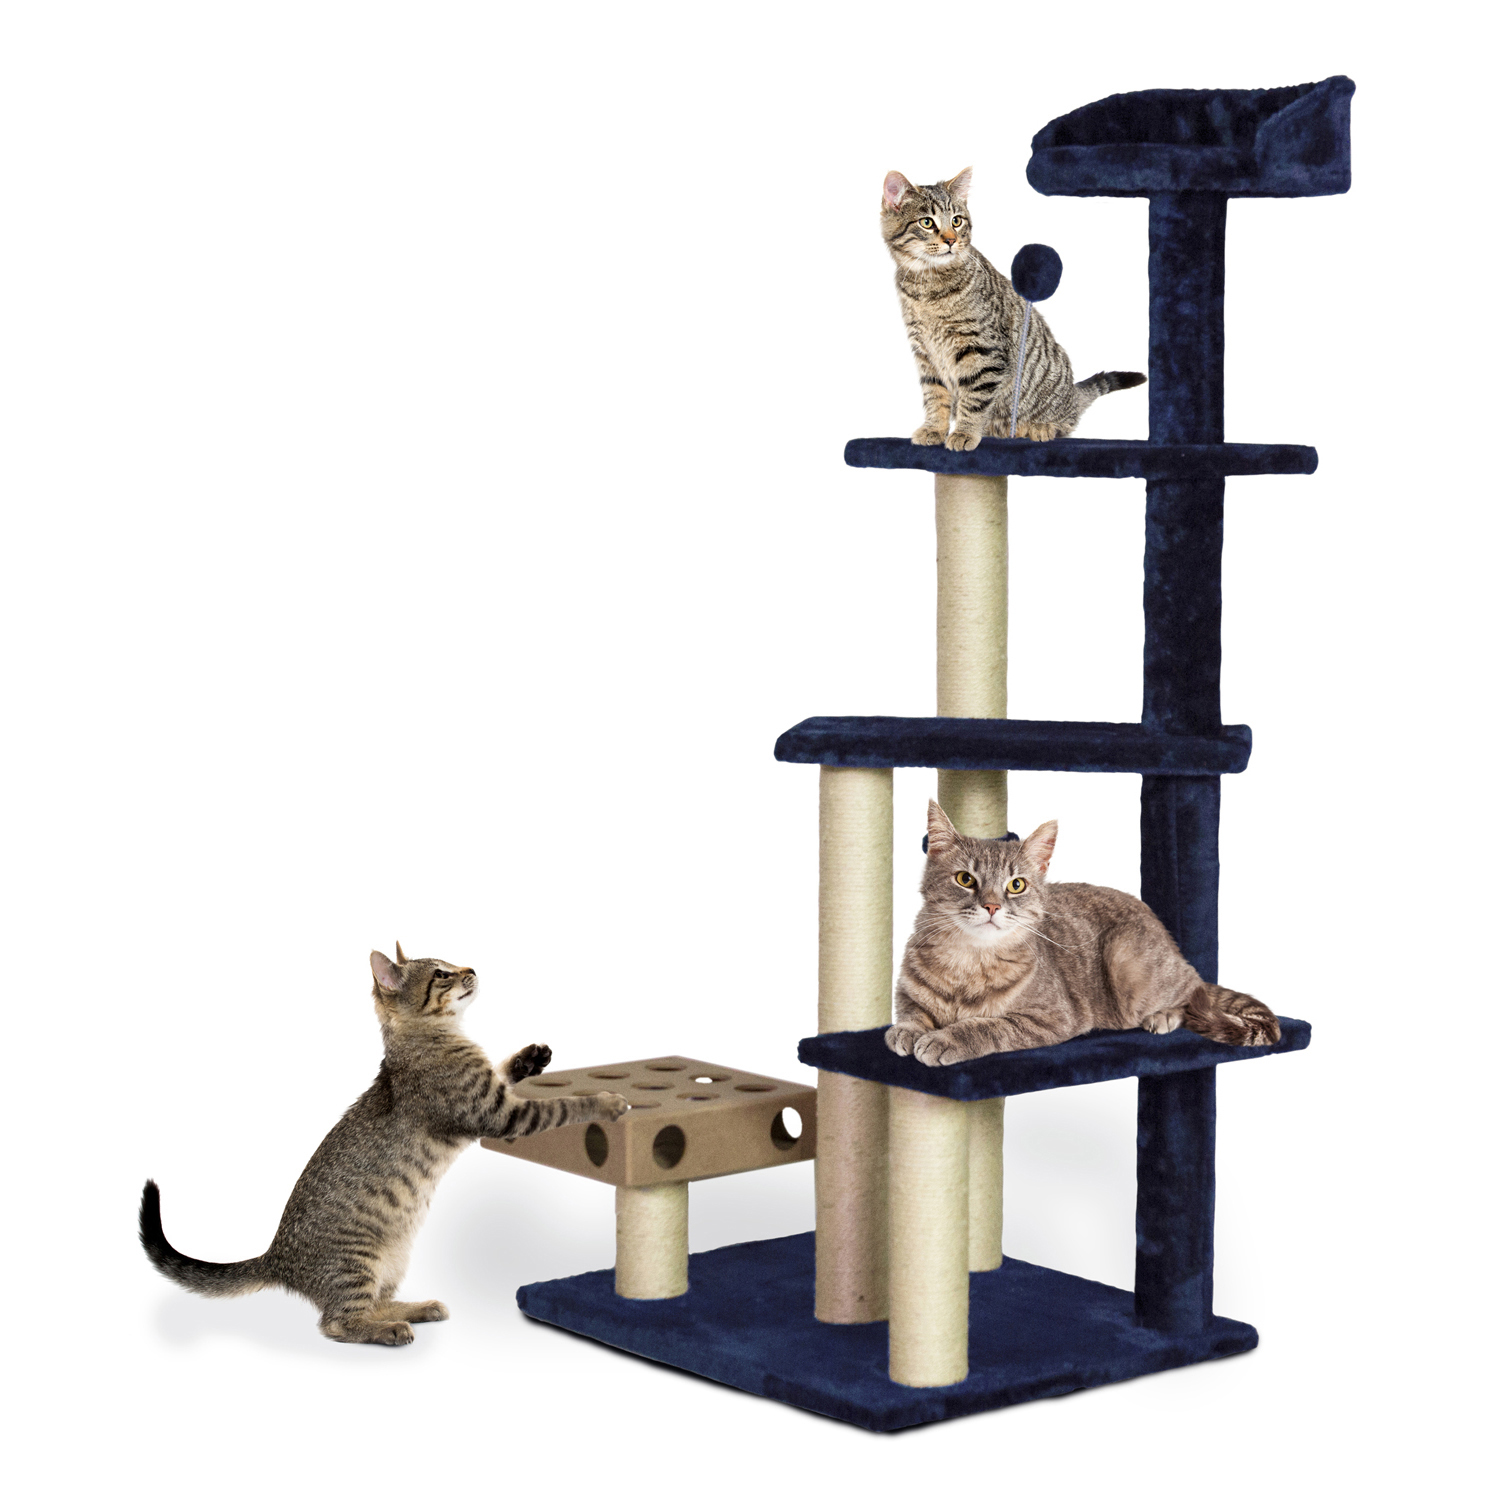 Cat Furniture Play Stairs with Cat-IQ Busy Box in Blue